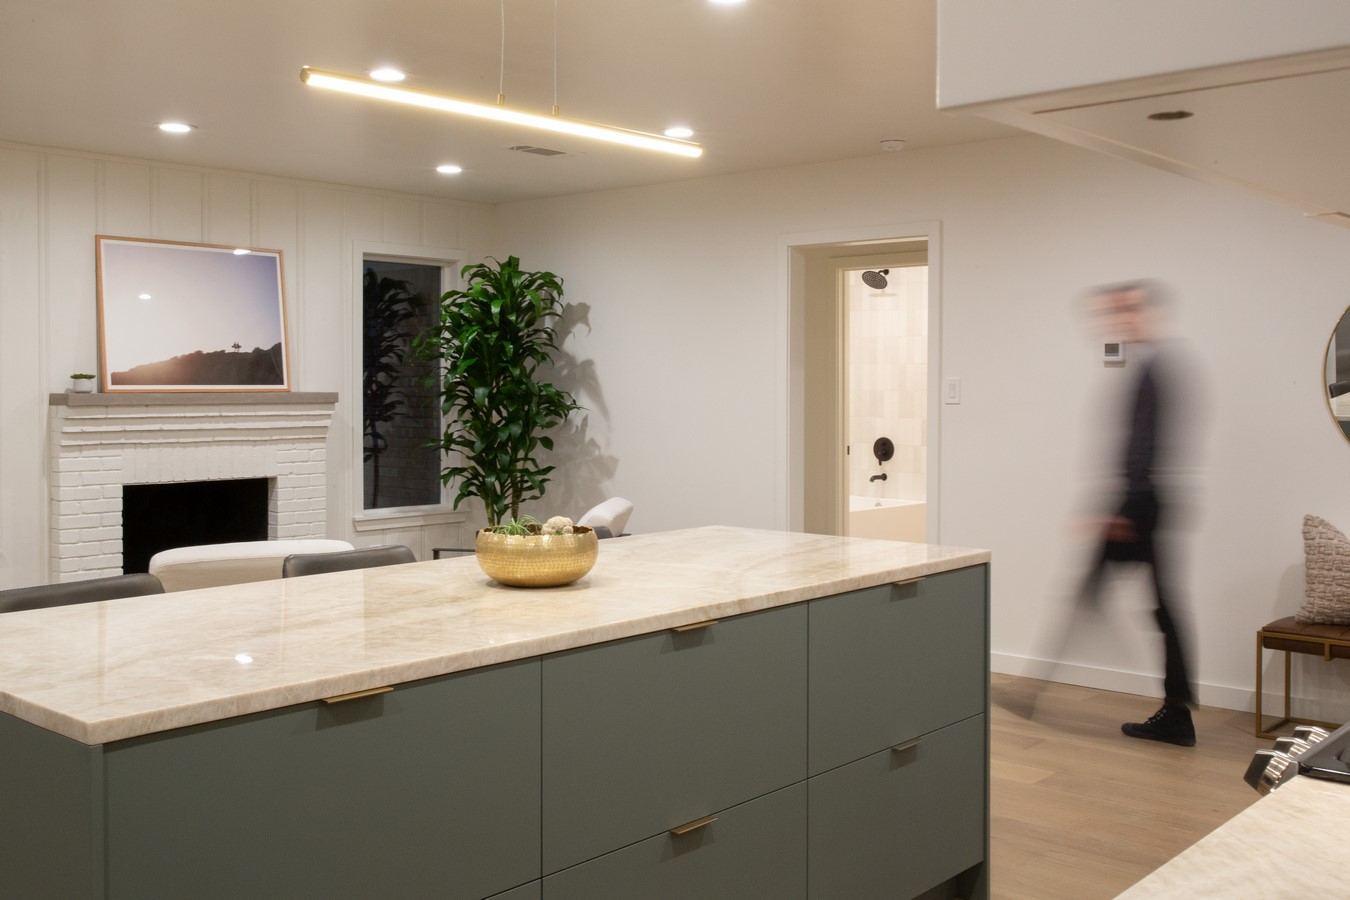 Vickery Addition by Object & Architecture - Sheet2